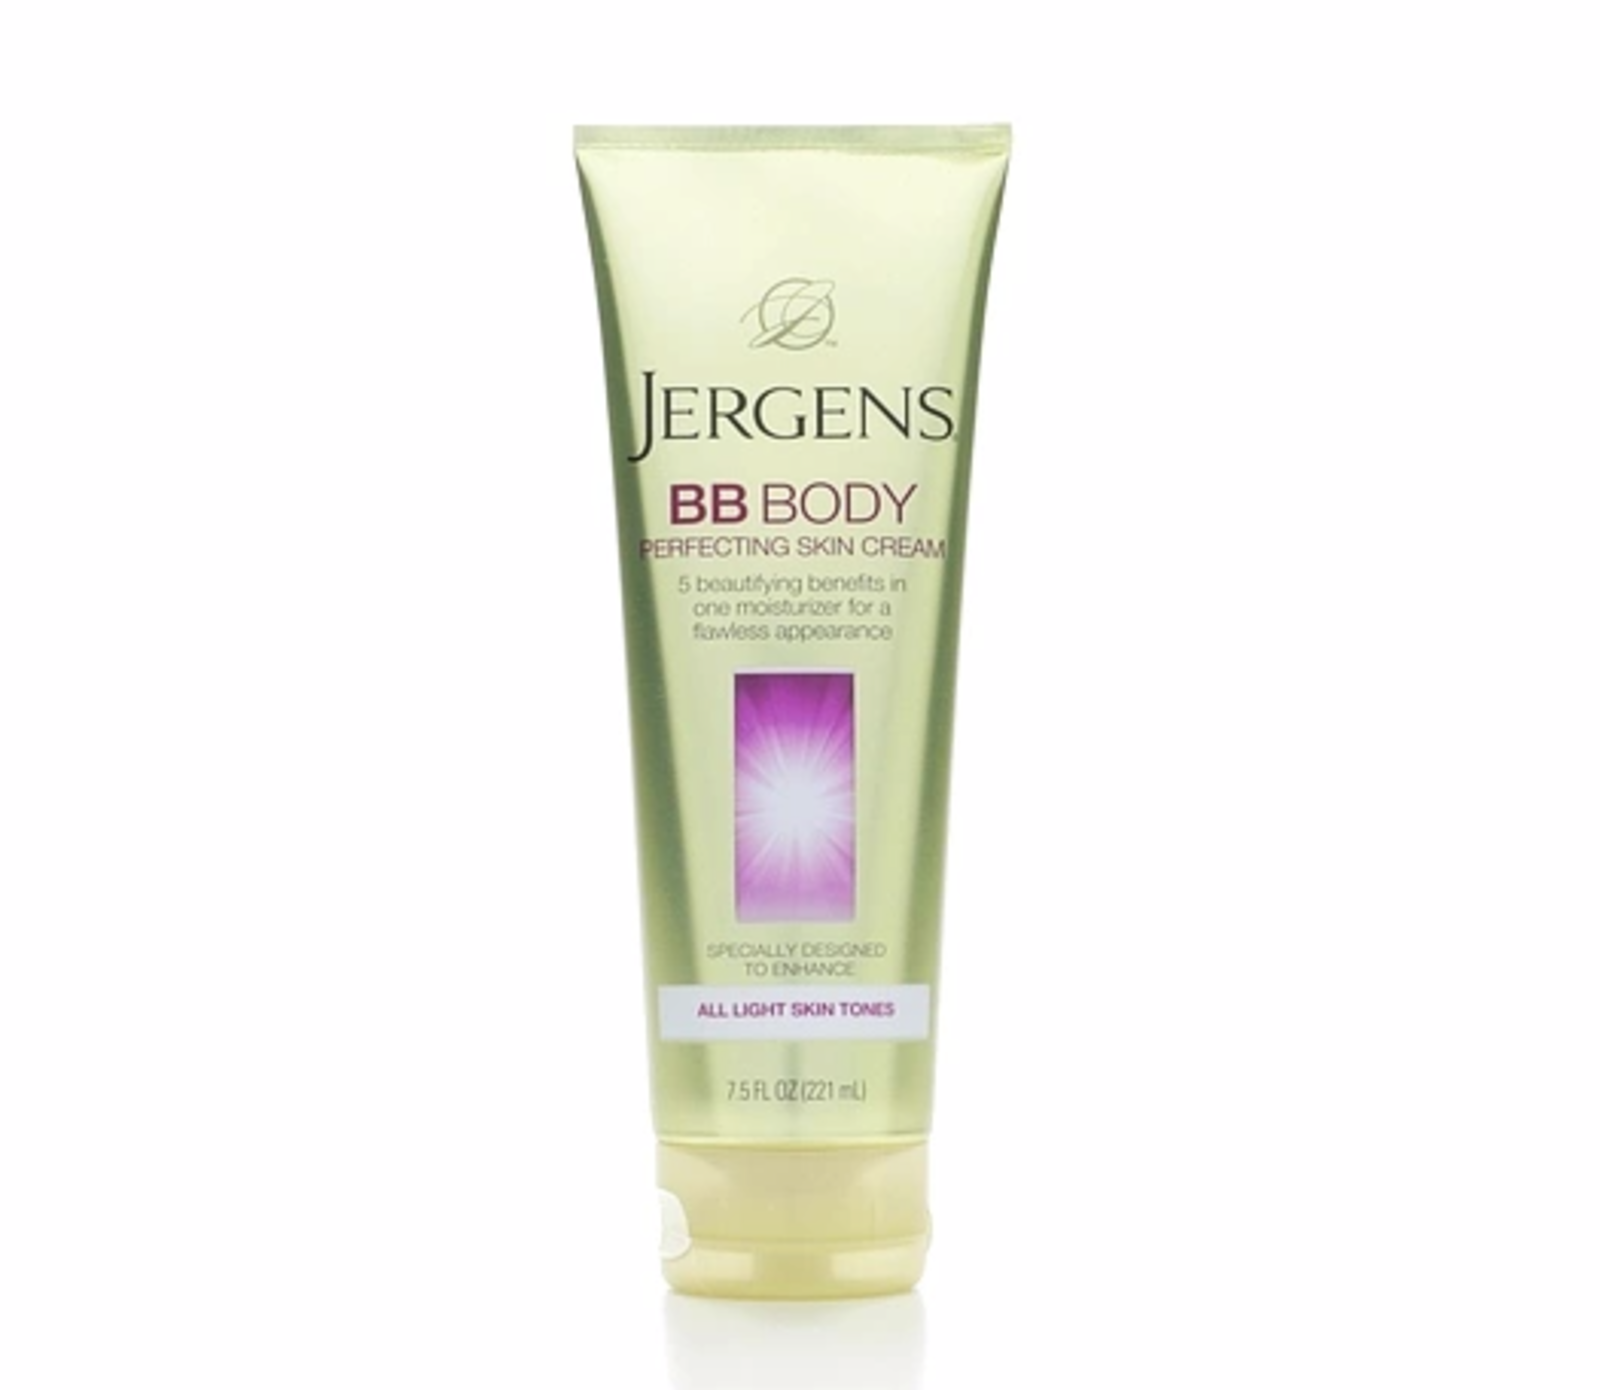 The Best BB Creams for Your Body  Make up Beauty products and